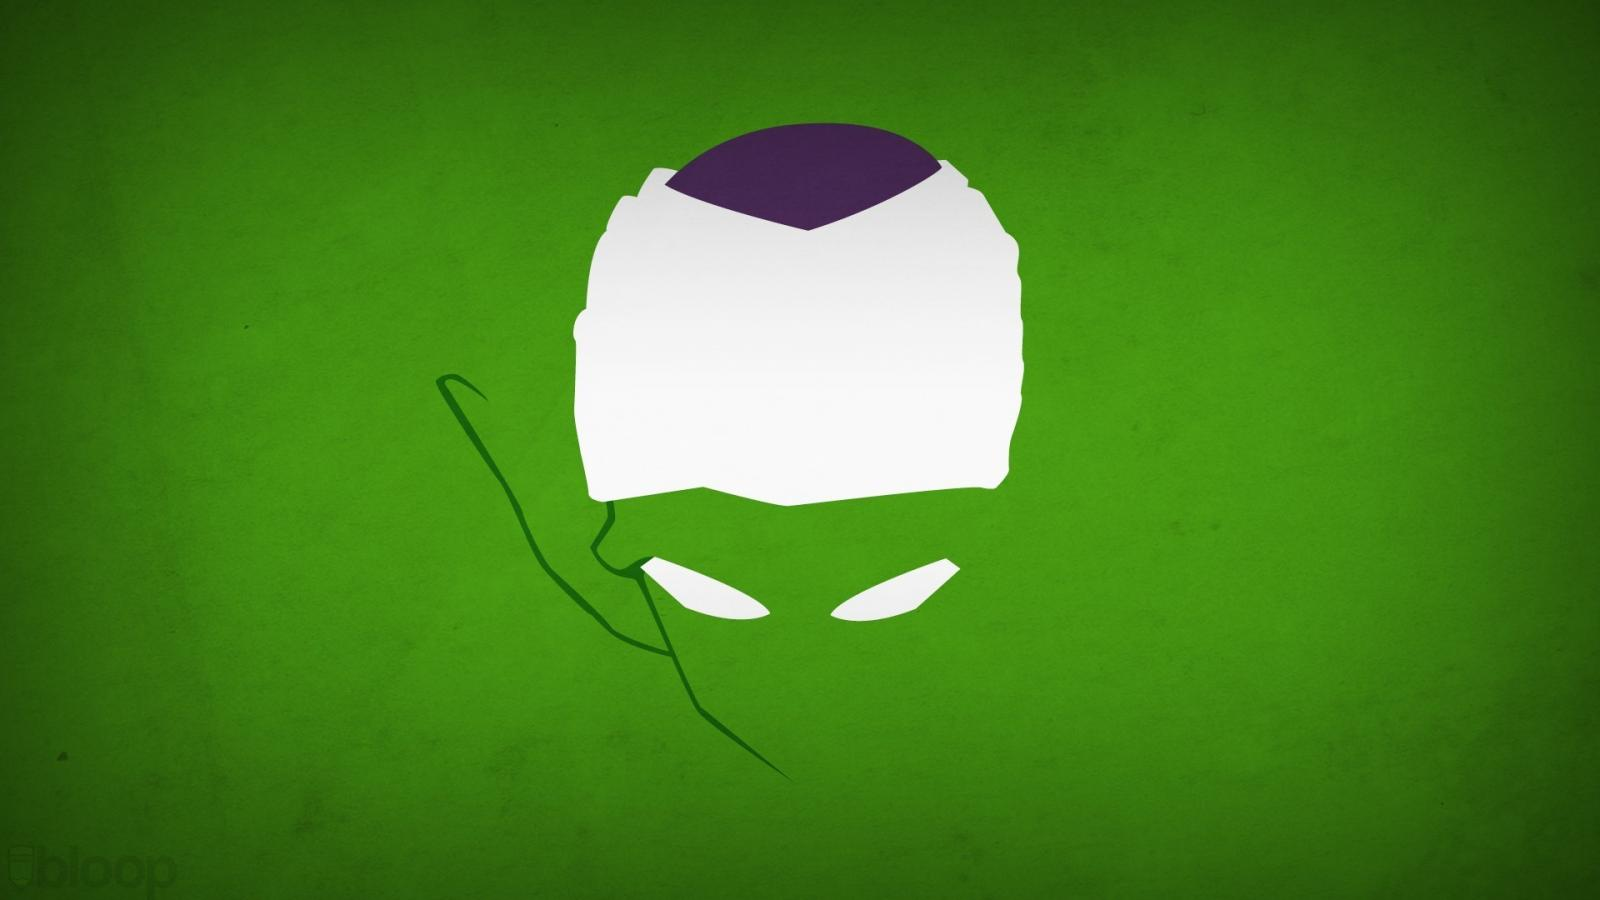 Minimalistic piccolo dragon ball z green background blo0p wallpaper 1600x900